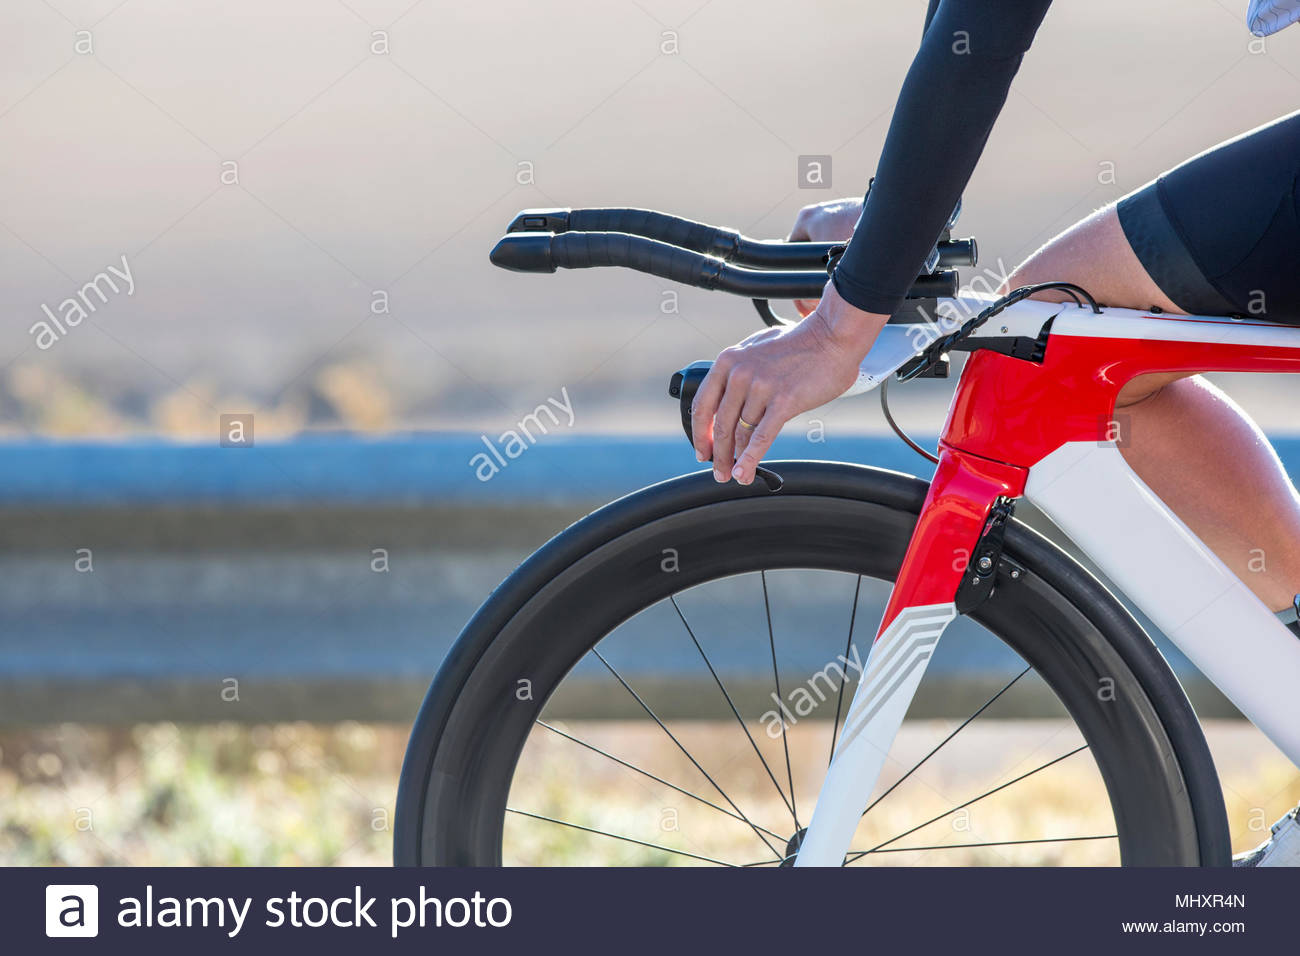 Close-up of female cyclist hands on handlebars of race bicycle - Stock Image